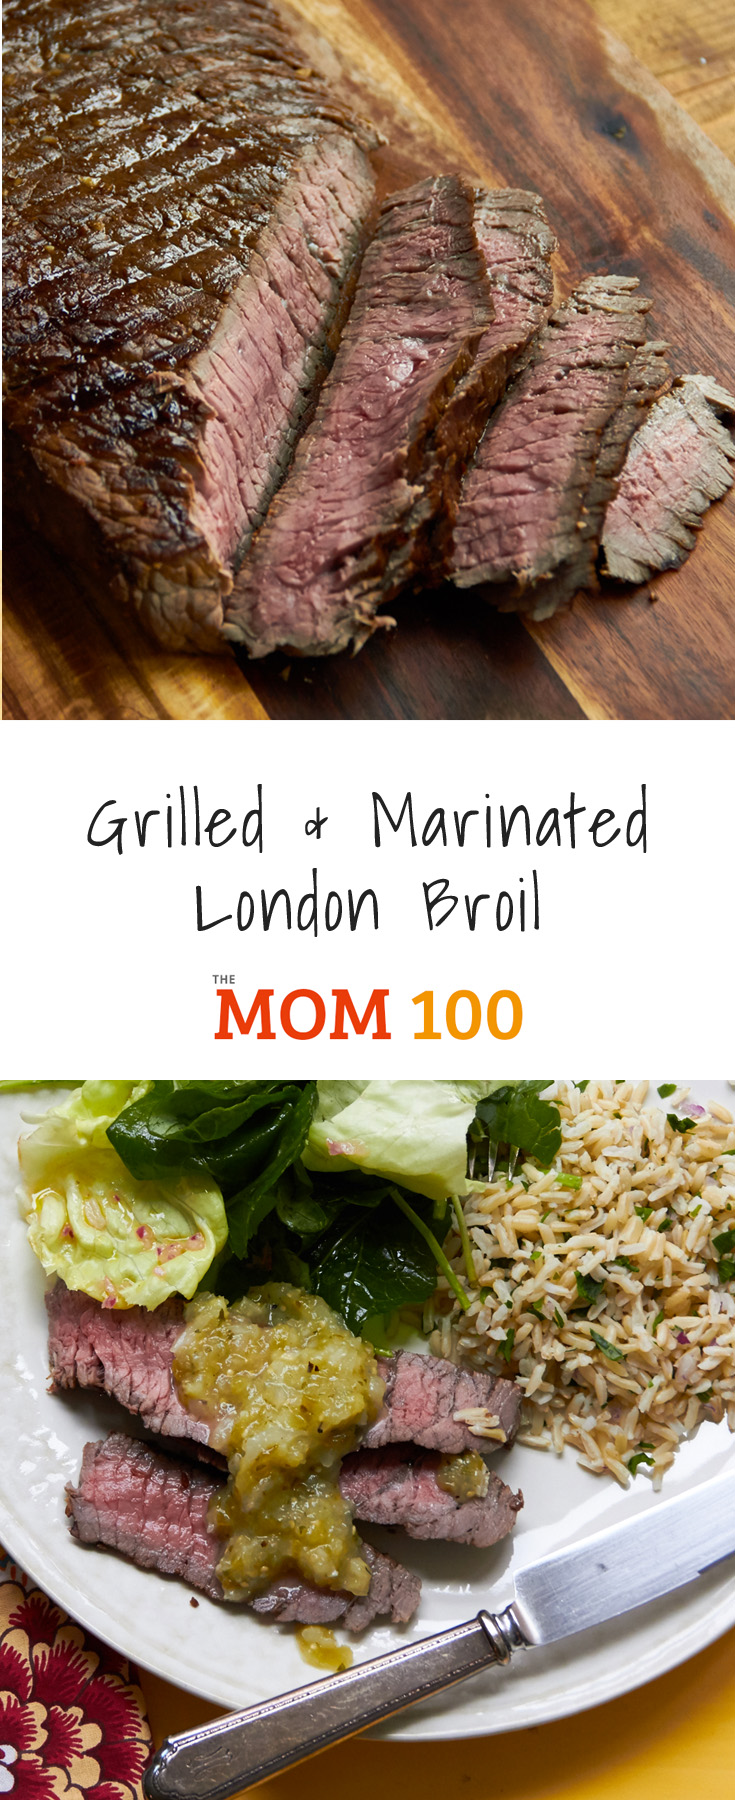 Once you make this Grilled and Marinated London Broil, you will definitely understand why London Broil is such a popular cut of meat, and such great bang for the buck.